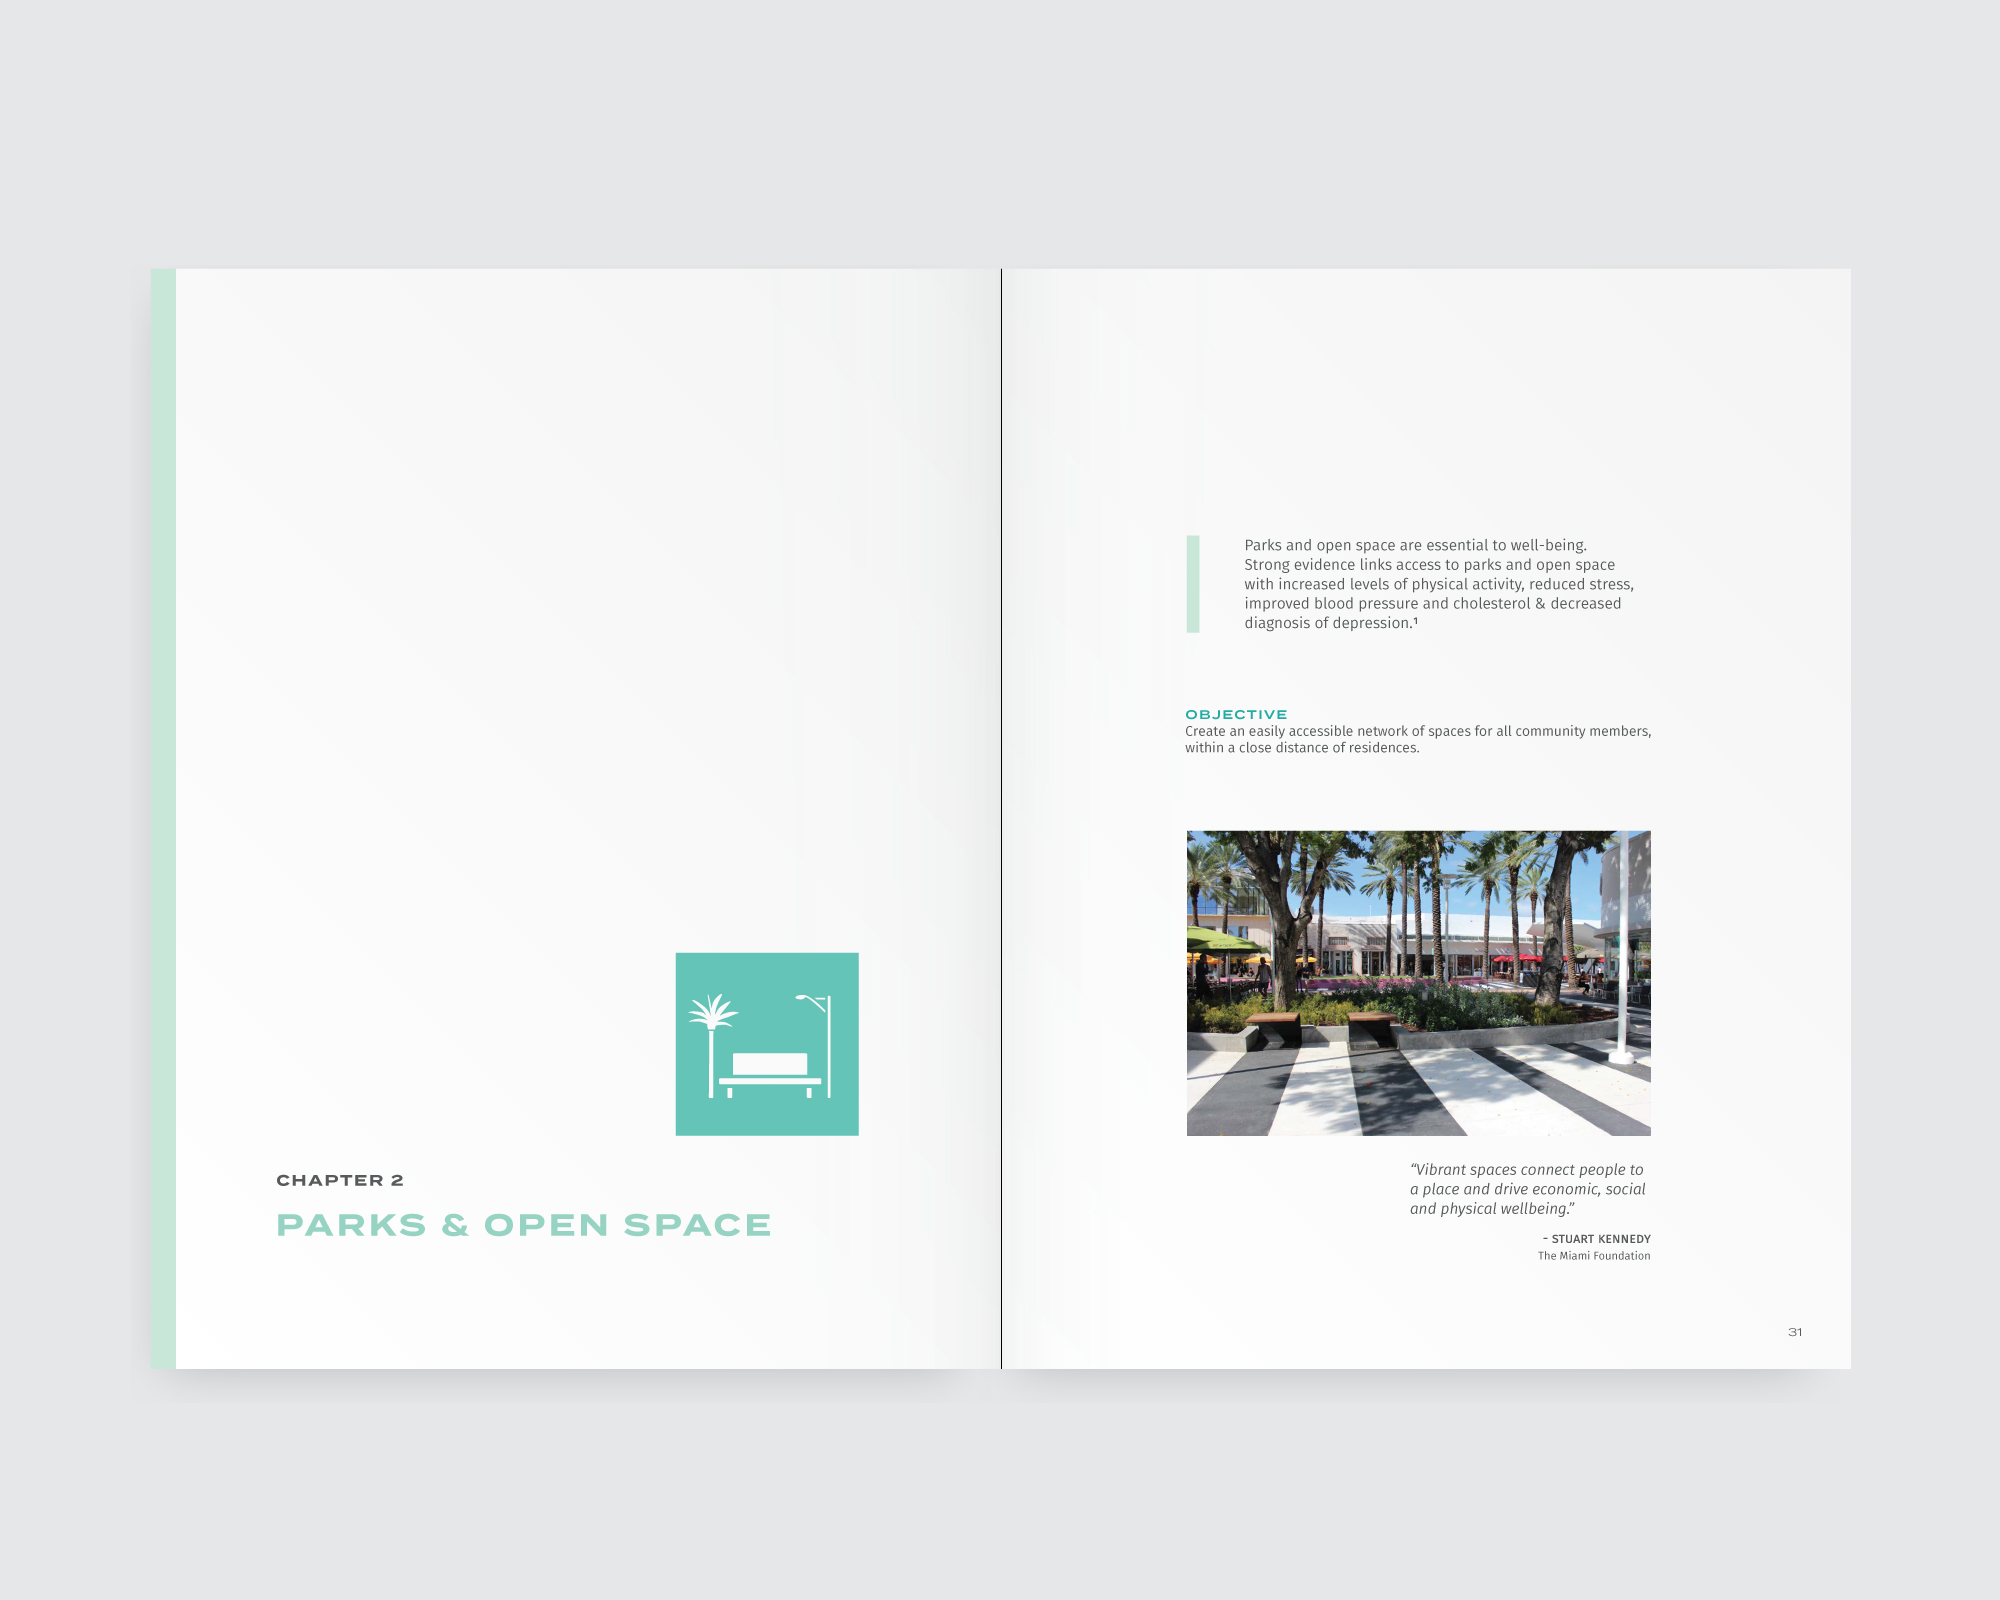 Handbook design—book layout showing chapter heading and icons in use